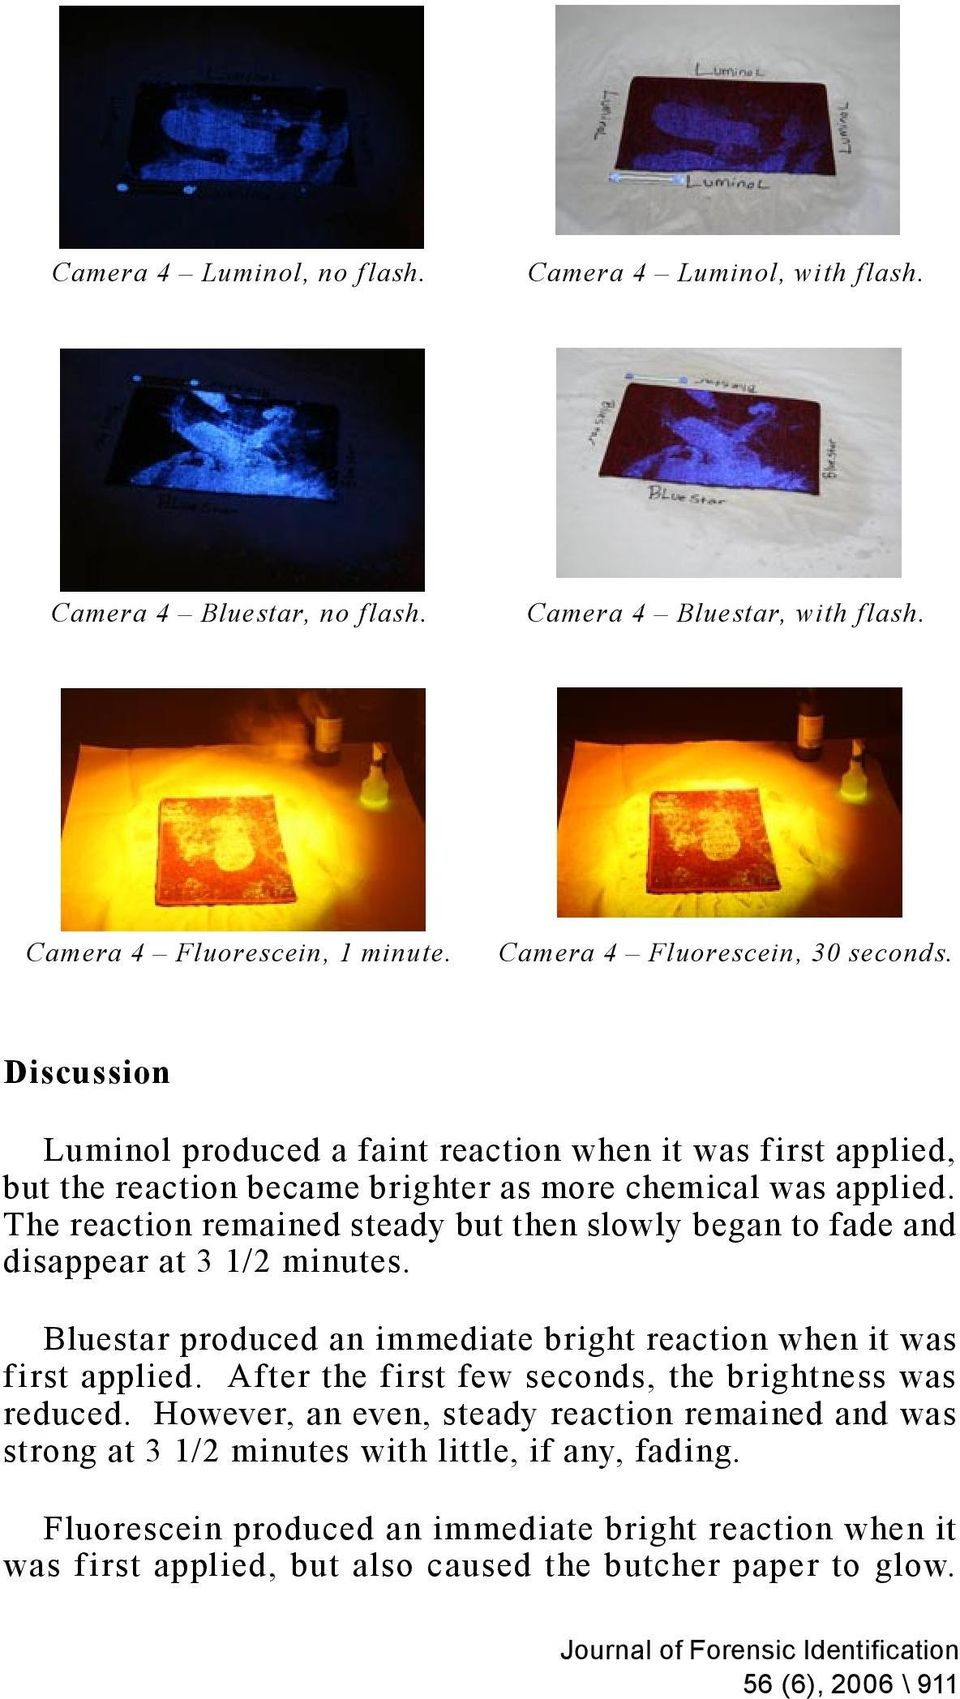 The reaction remained steady but then slowly began to fade and disappear at 3 1/2 minutes. Bluestar produced an immediate bright reaction when it was first applied.